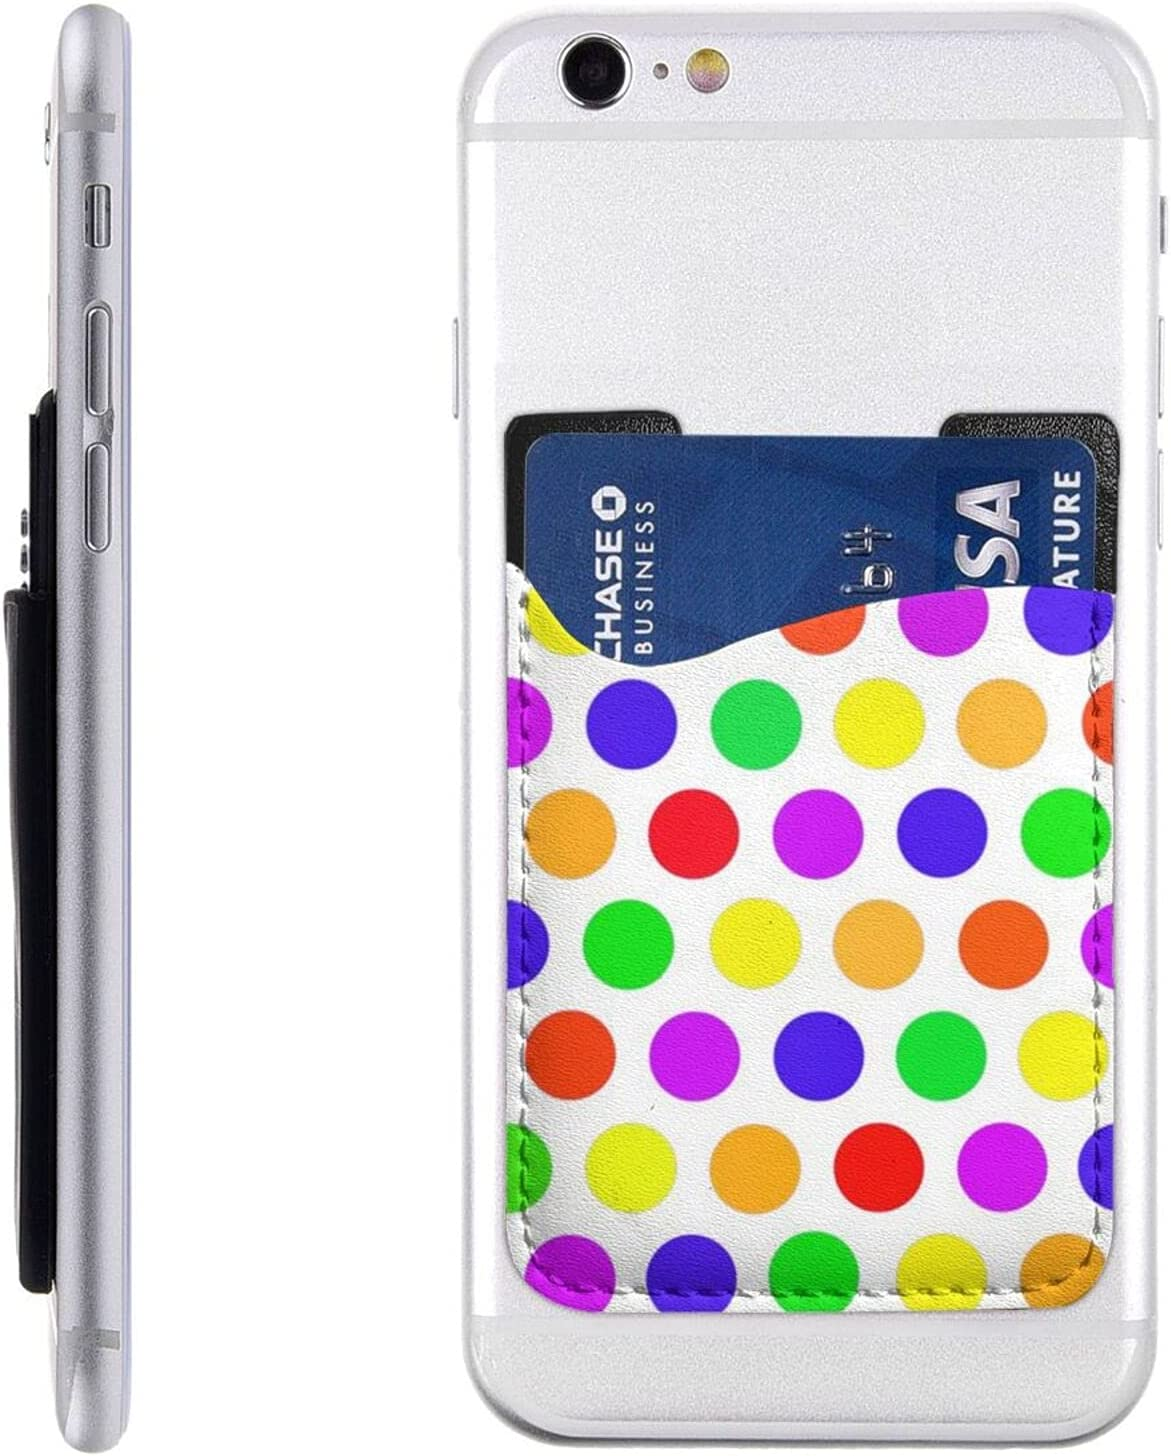 Beautiful Polka Dot Manufacturer regenerated product Phone Card Cell W Stick On Holder Sales of SALE items from new works